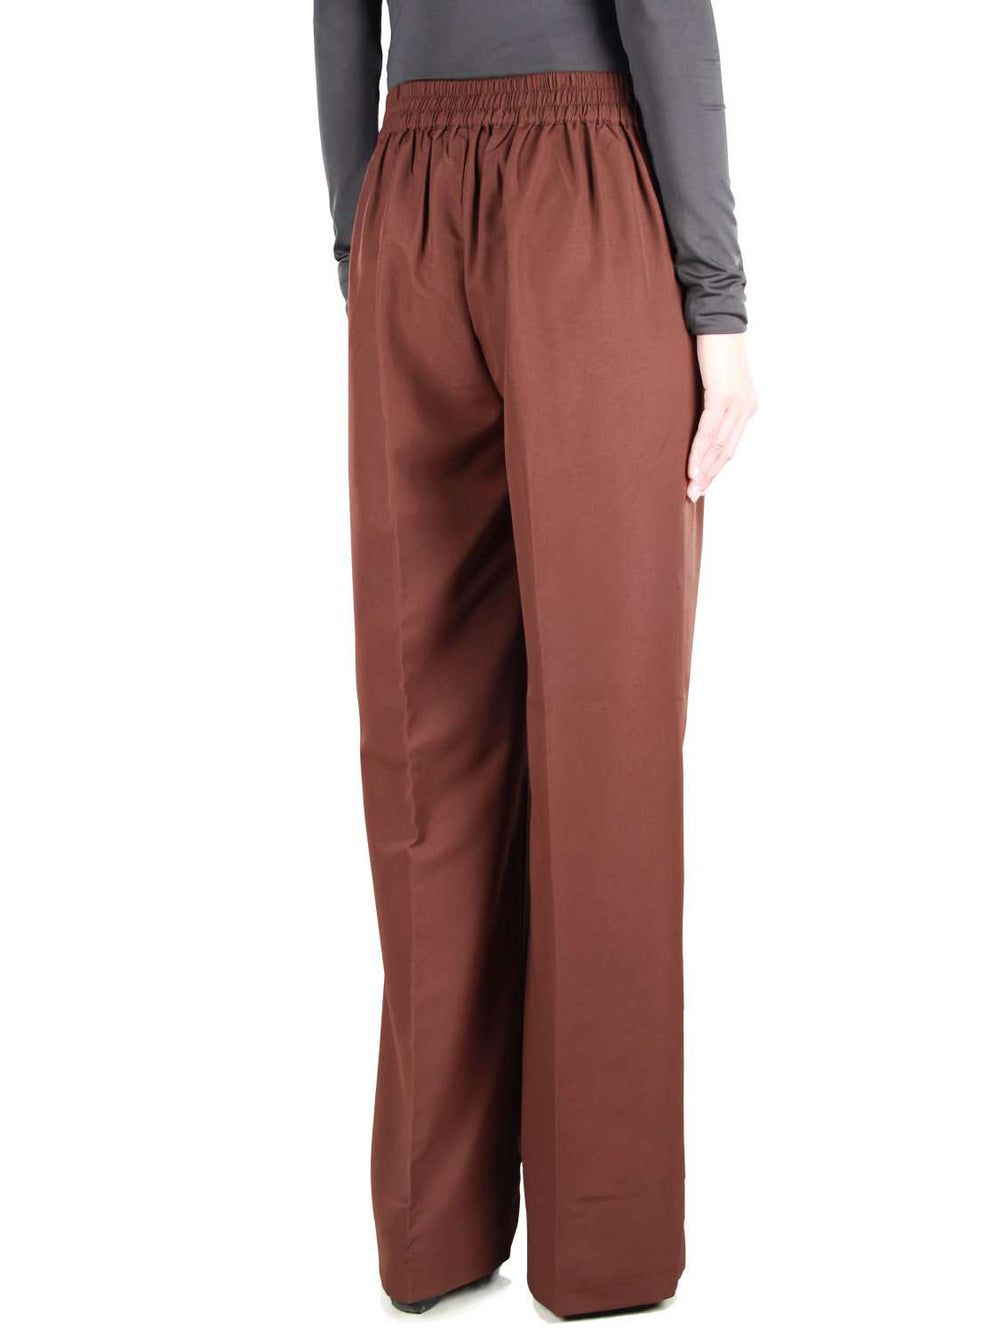 Samihah Brown Pants